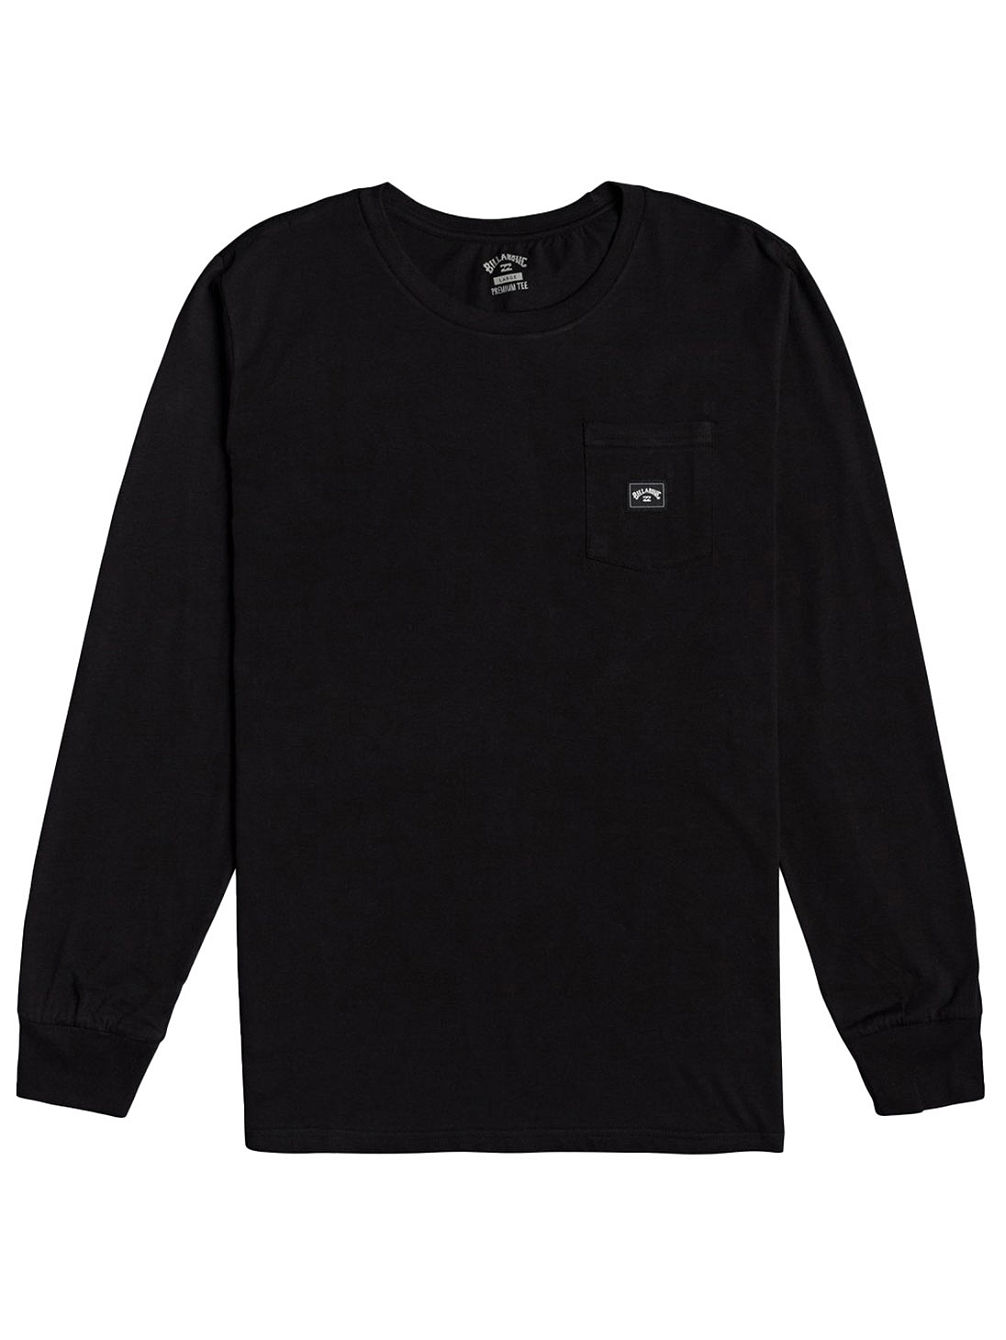 Stacked Longsleeve